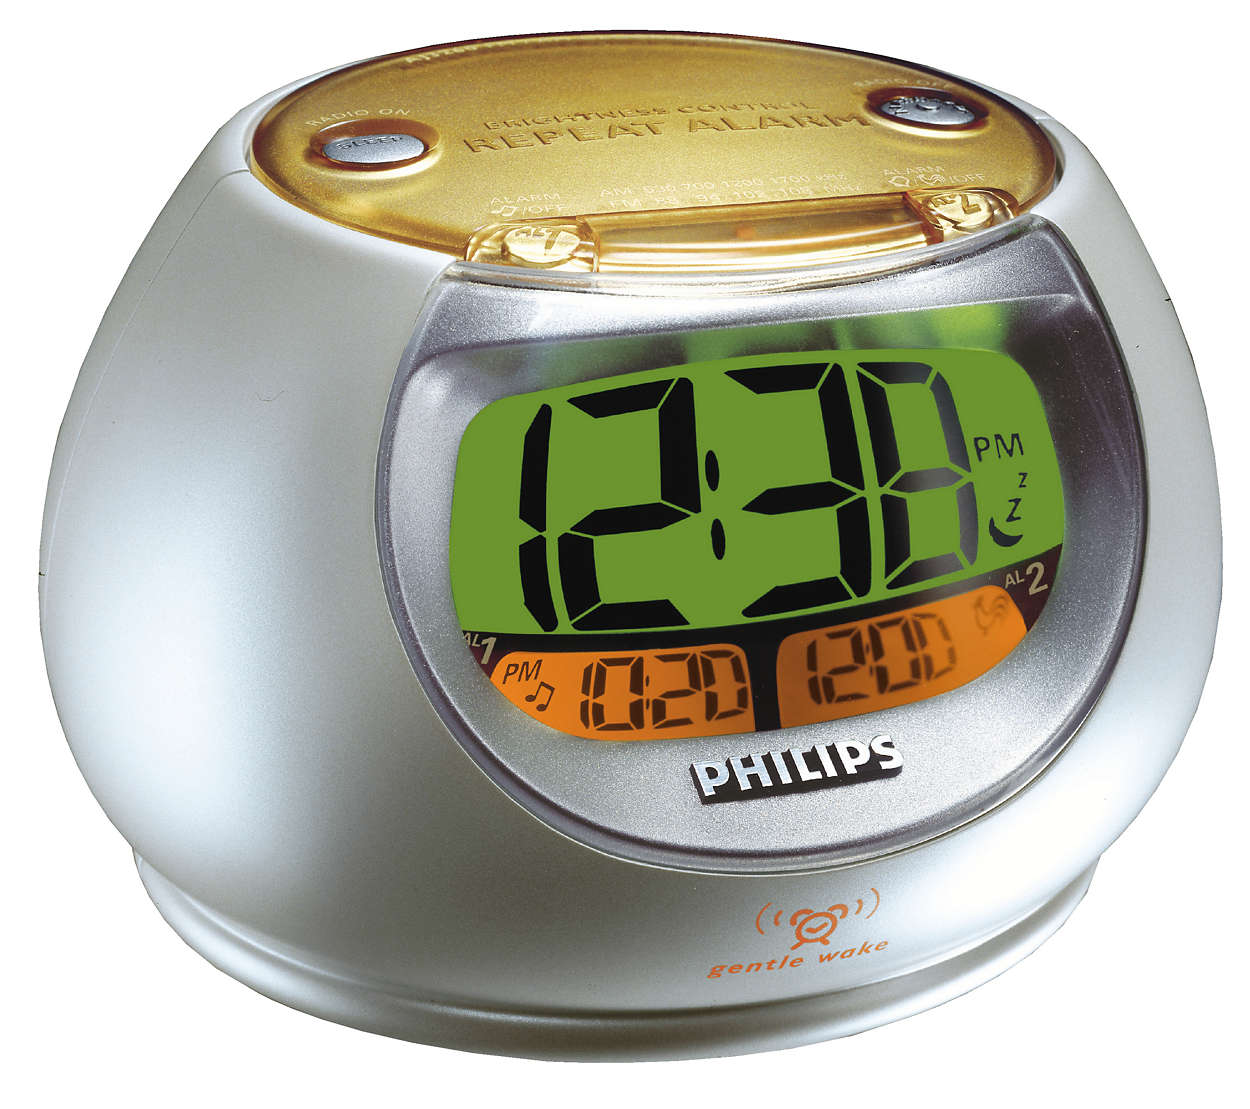 Alarm time display with rooster wake-up alarm